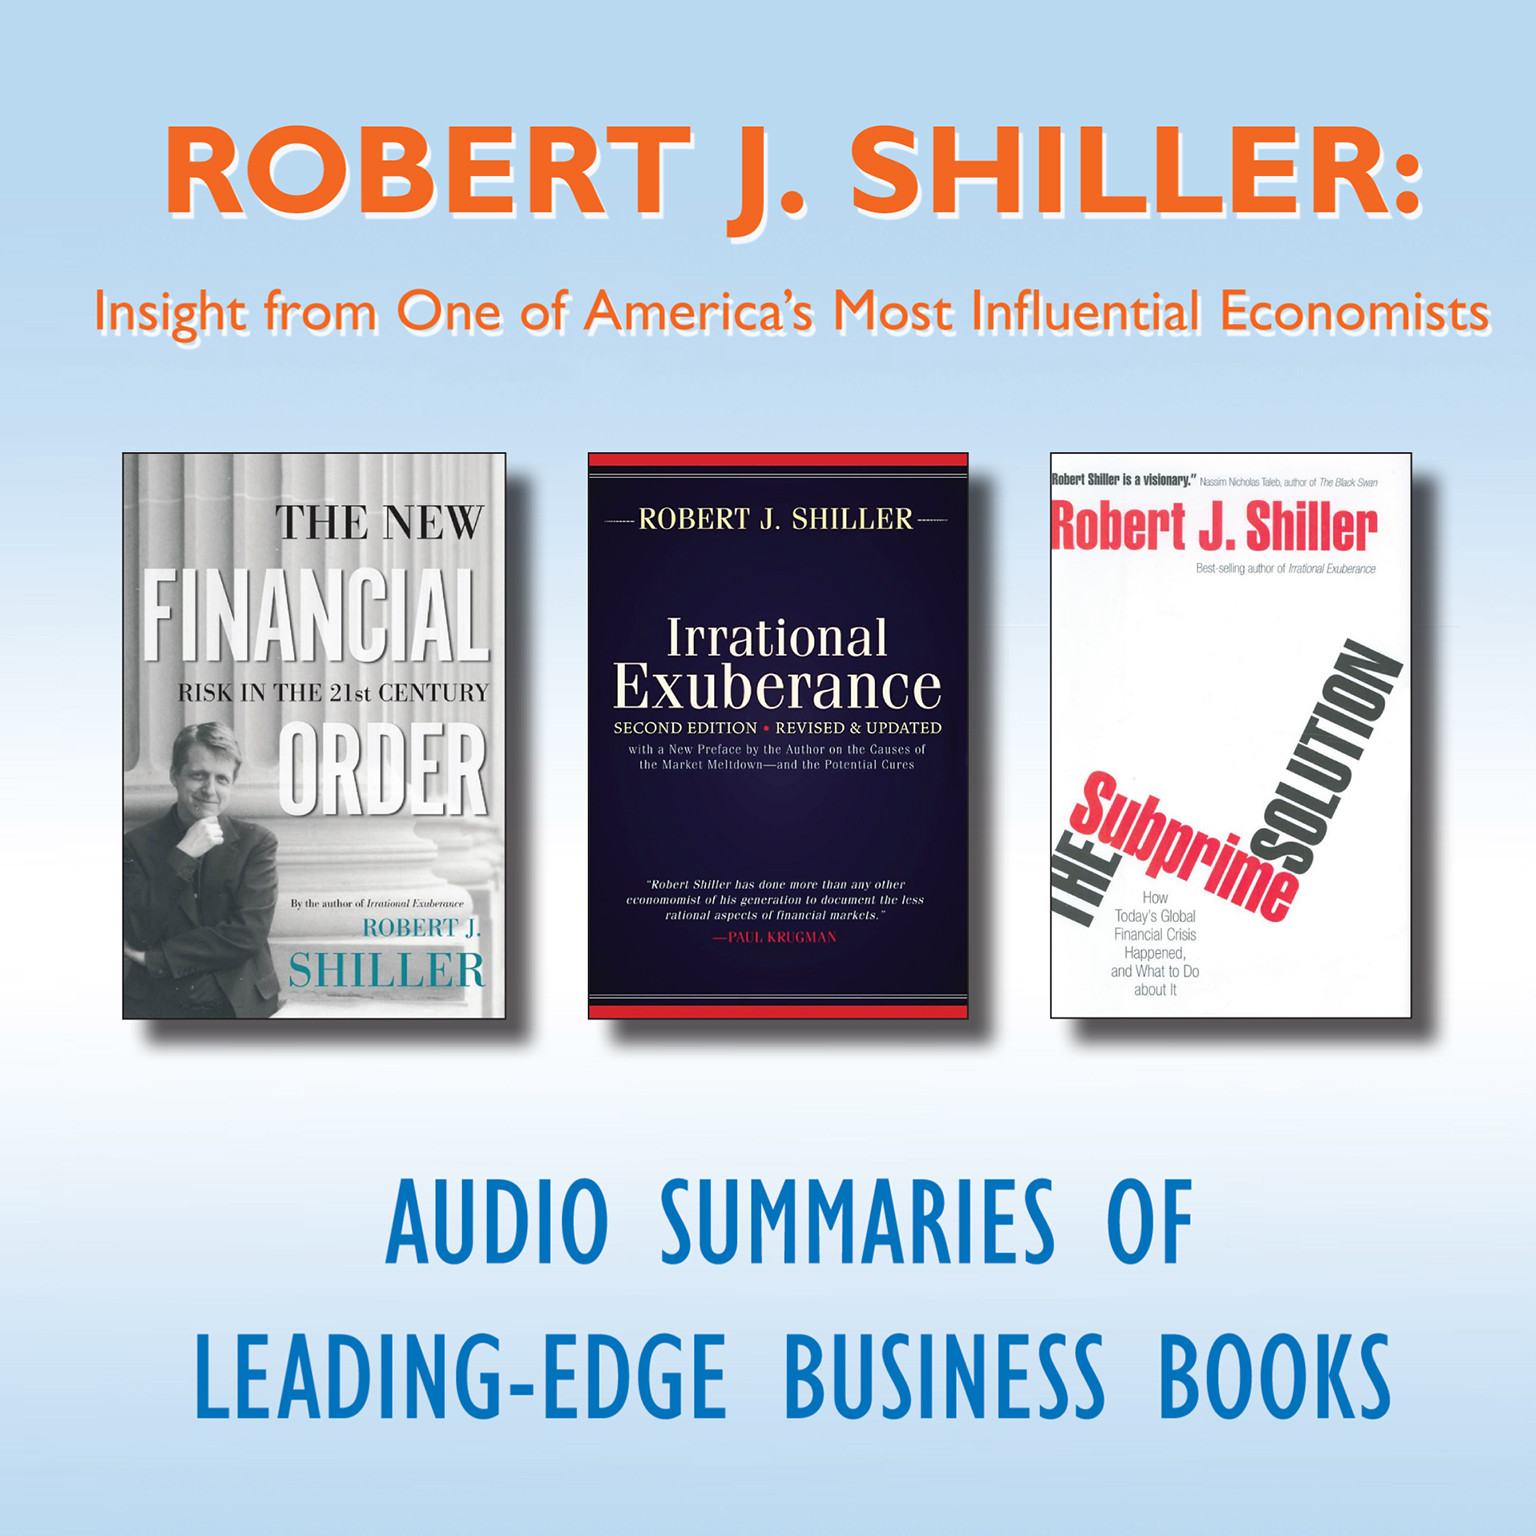 Printable Robert J. Shiller: Insight from One of America's Most Influential Economists Audiobook Cover Art